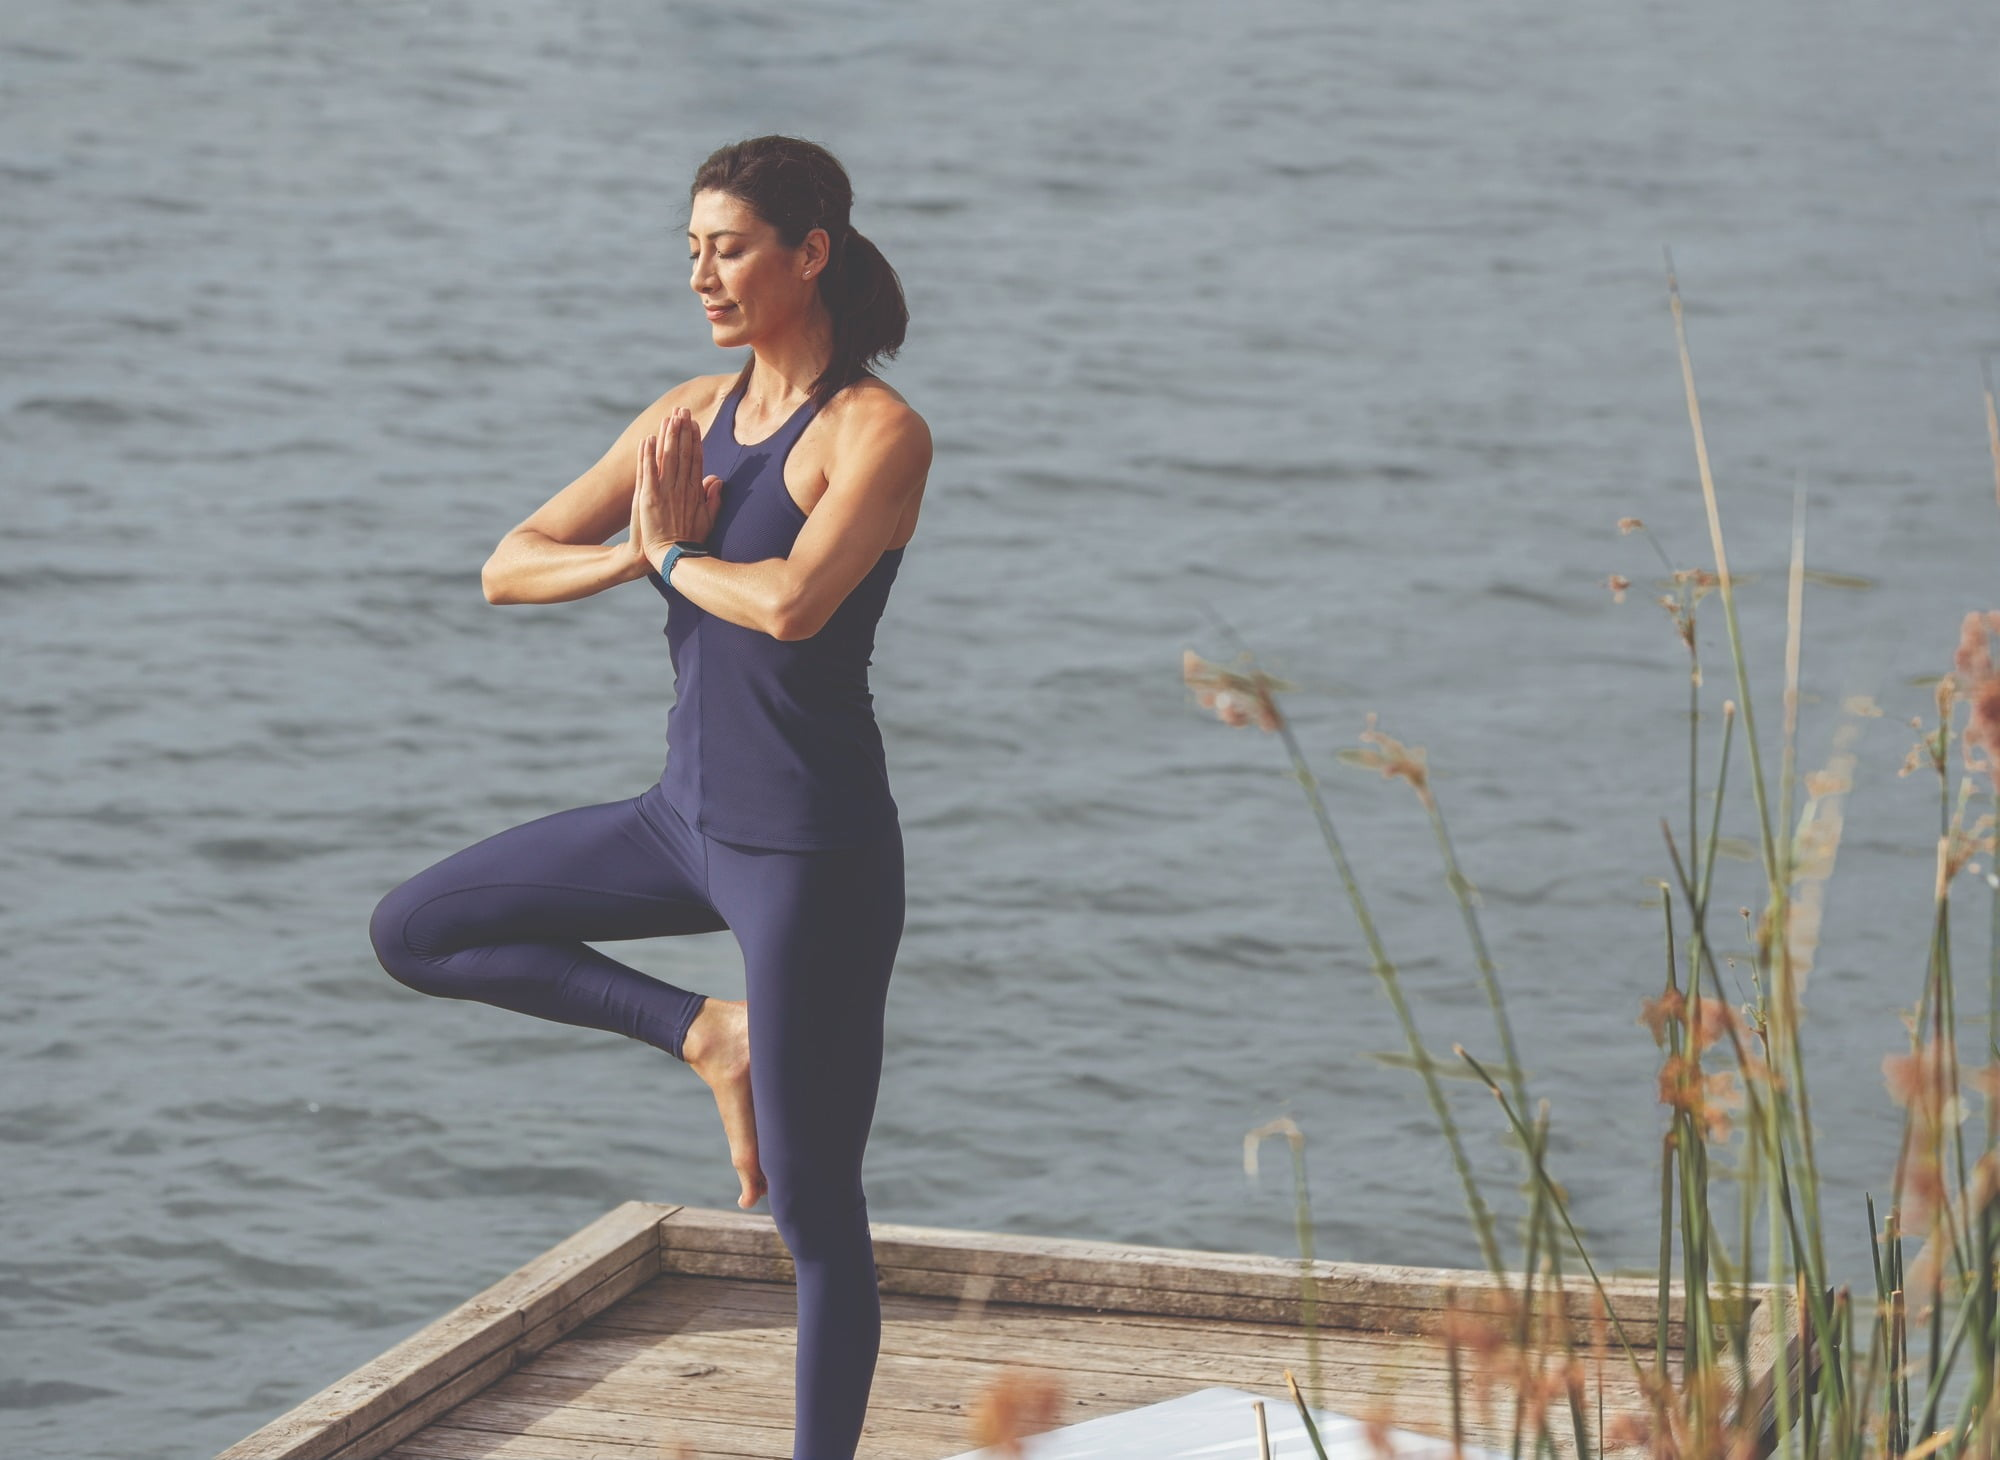 People in nature, Yoga mat, Active pants, Flash photography, Water, Hand, Shoulder, Plant, Neck